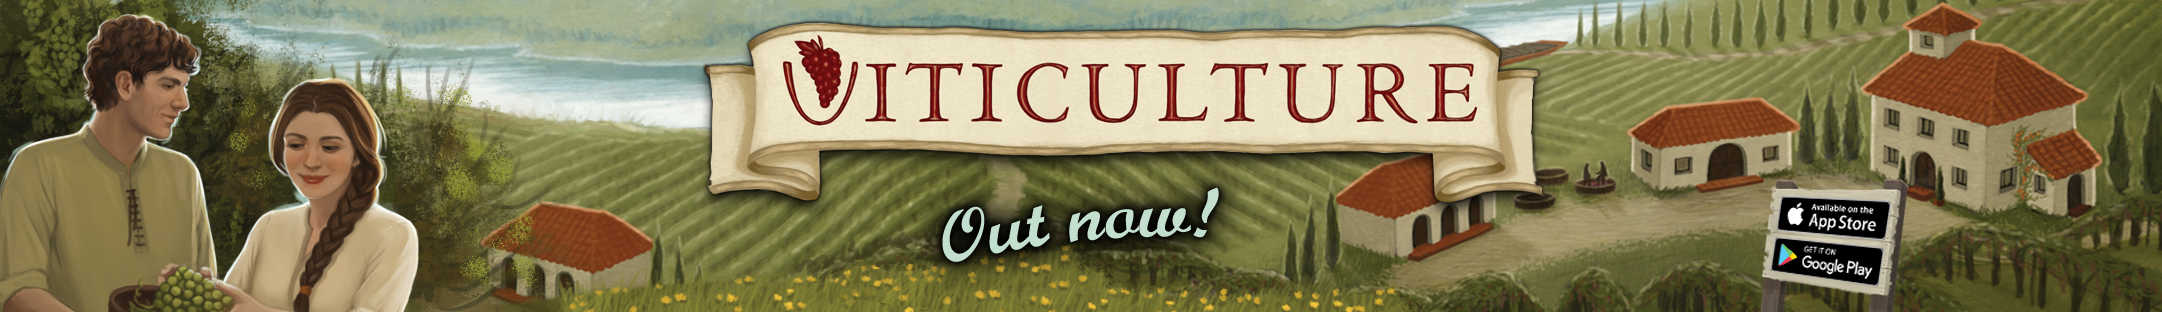 Viticulture by Jamey Stegmaier & Alan Stone